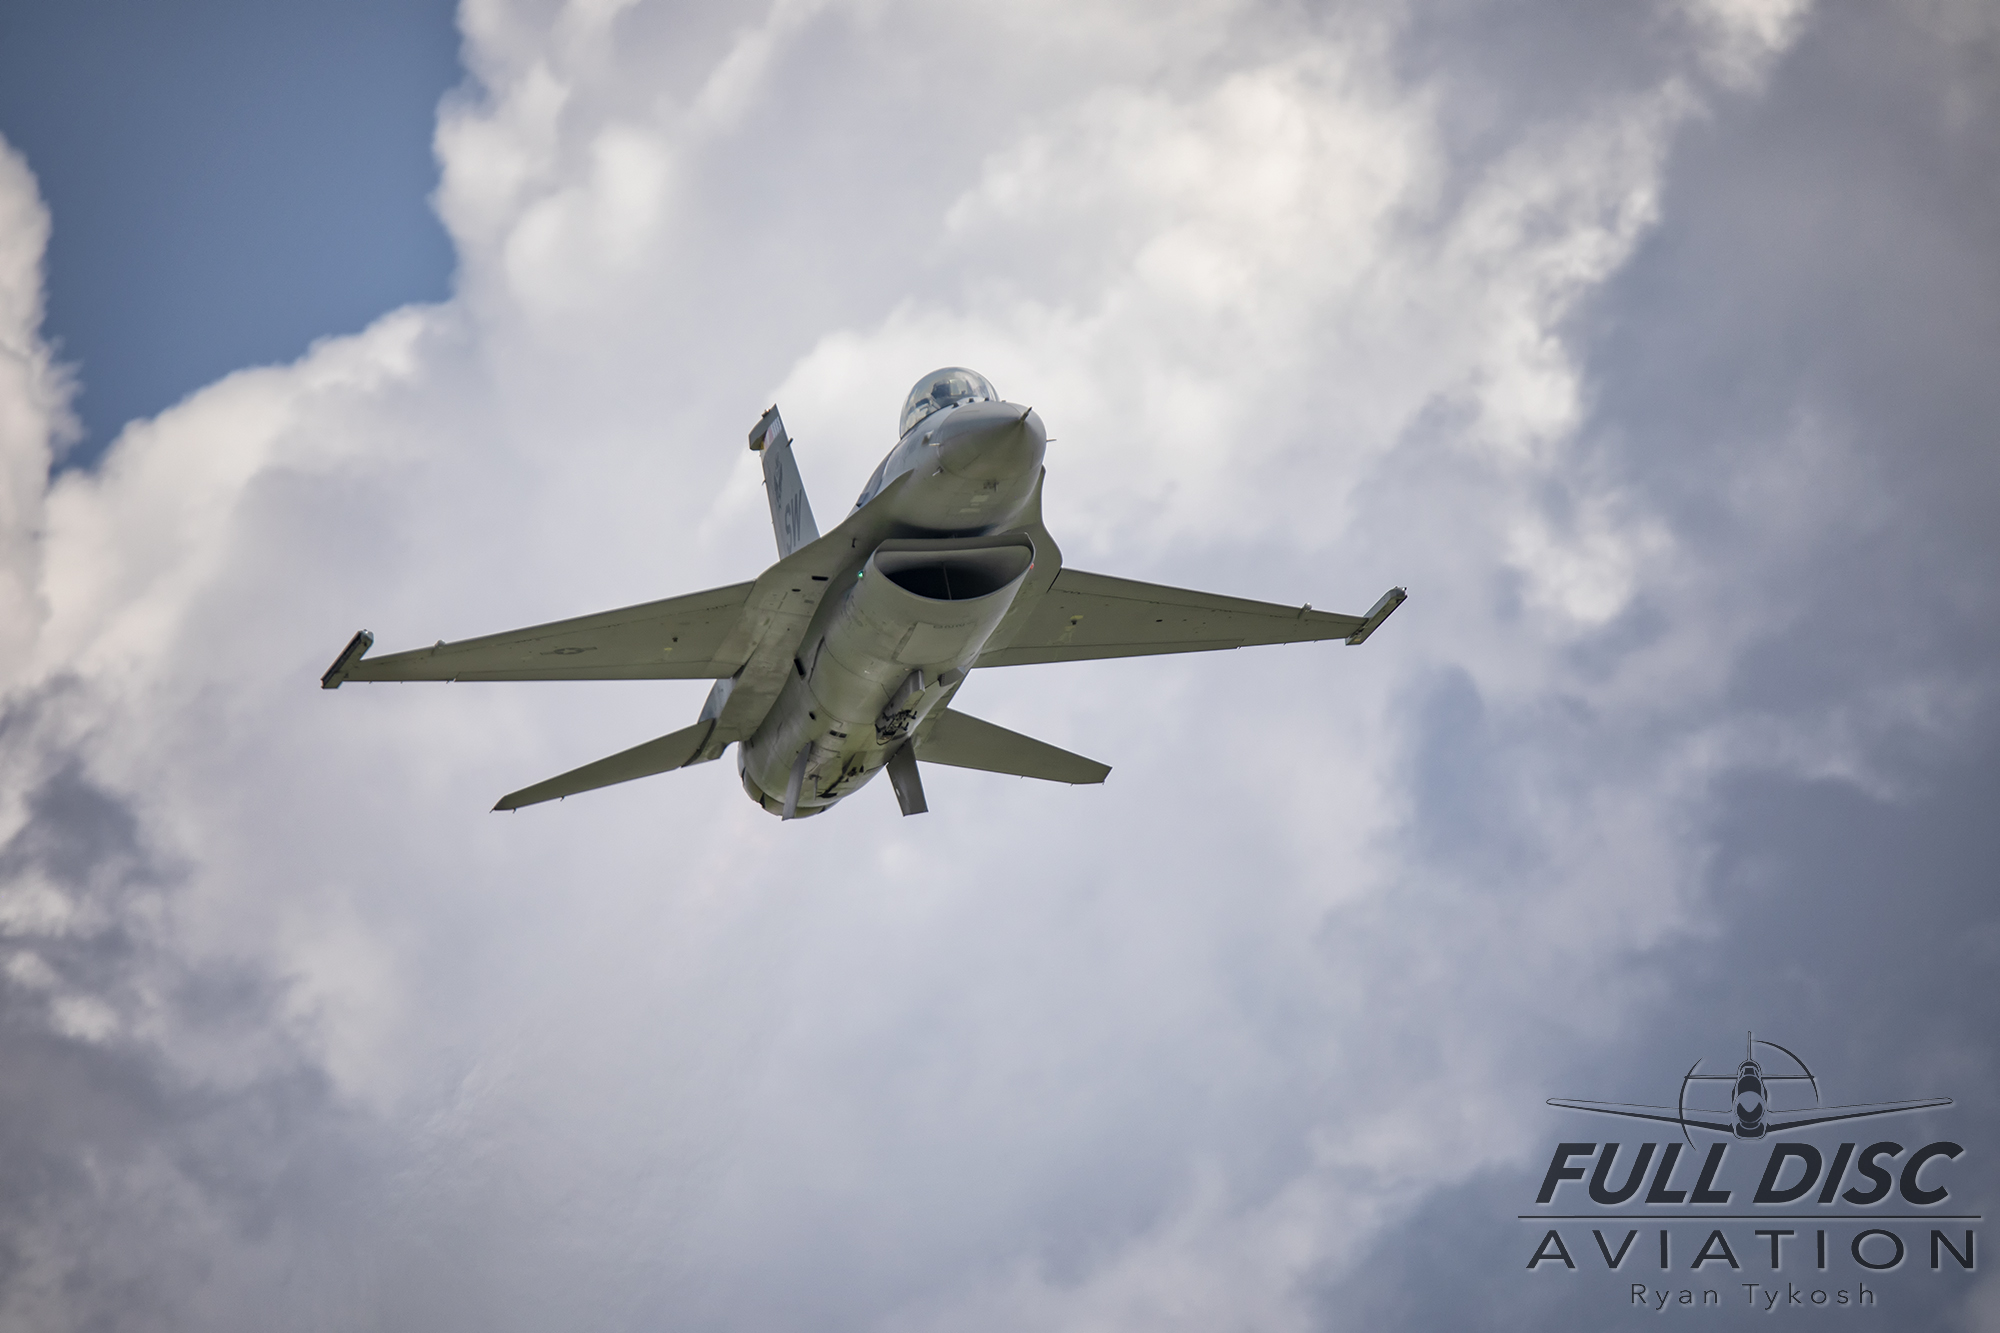 lbe19-fdartykosh-f16clouds.jpg